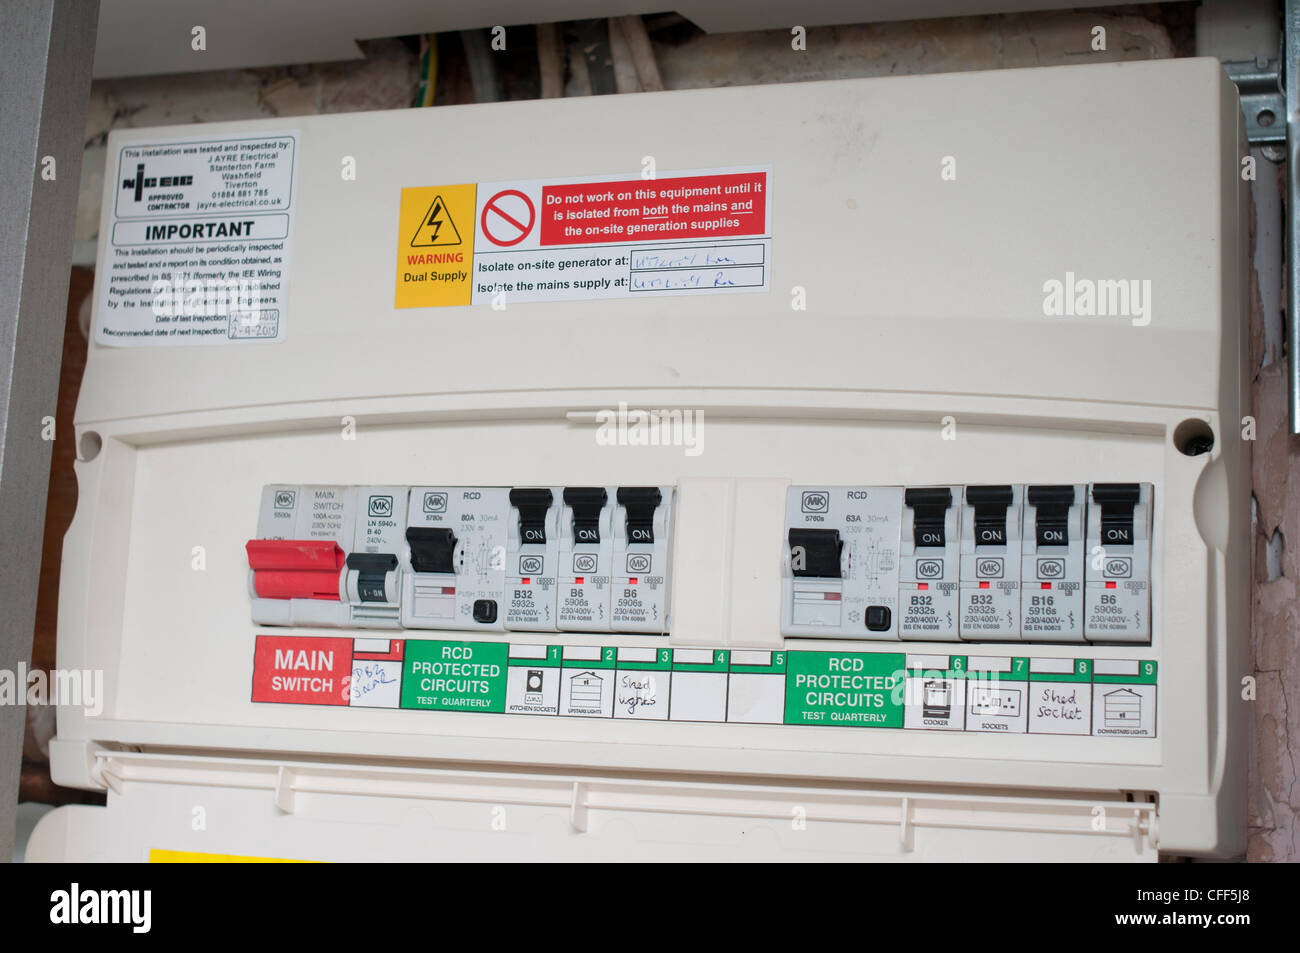 fuse box house stock photos & fuse box house stock images alamy breaker fuse box domestic fuse box stock image